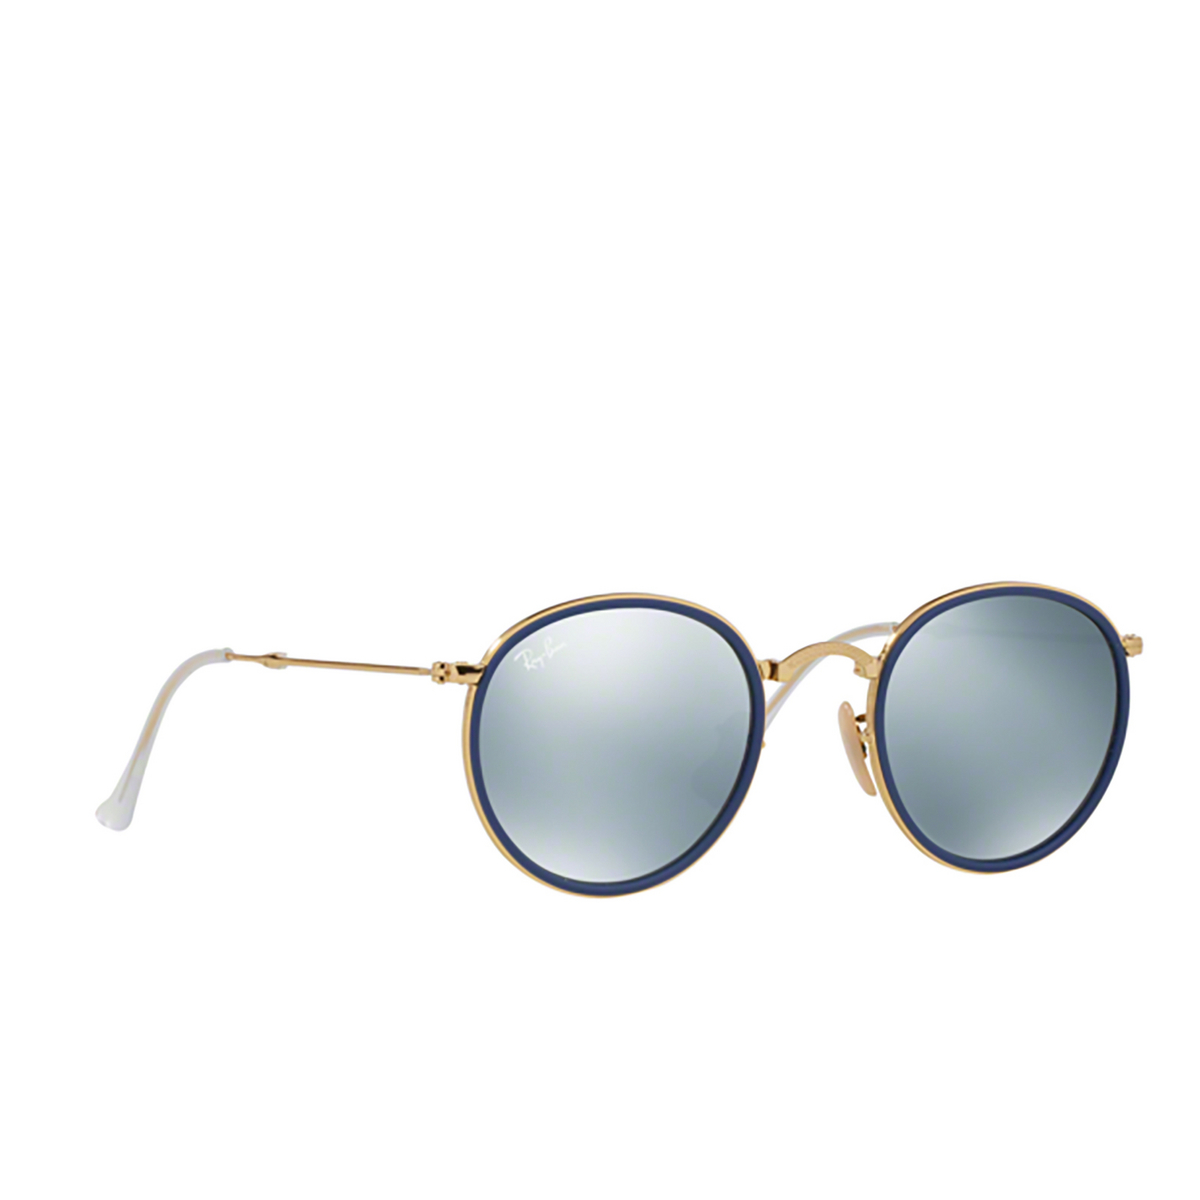 Ray-Ban® Round Sunglasses: Round Folding I RB3517 color Gold 001/30 - 2/3.